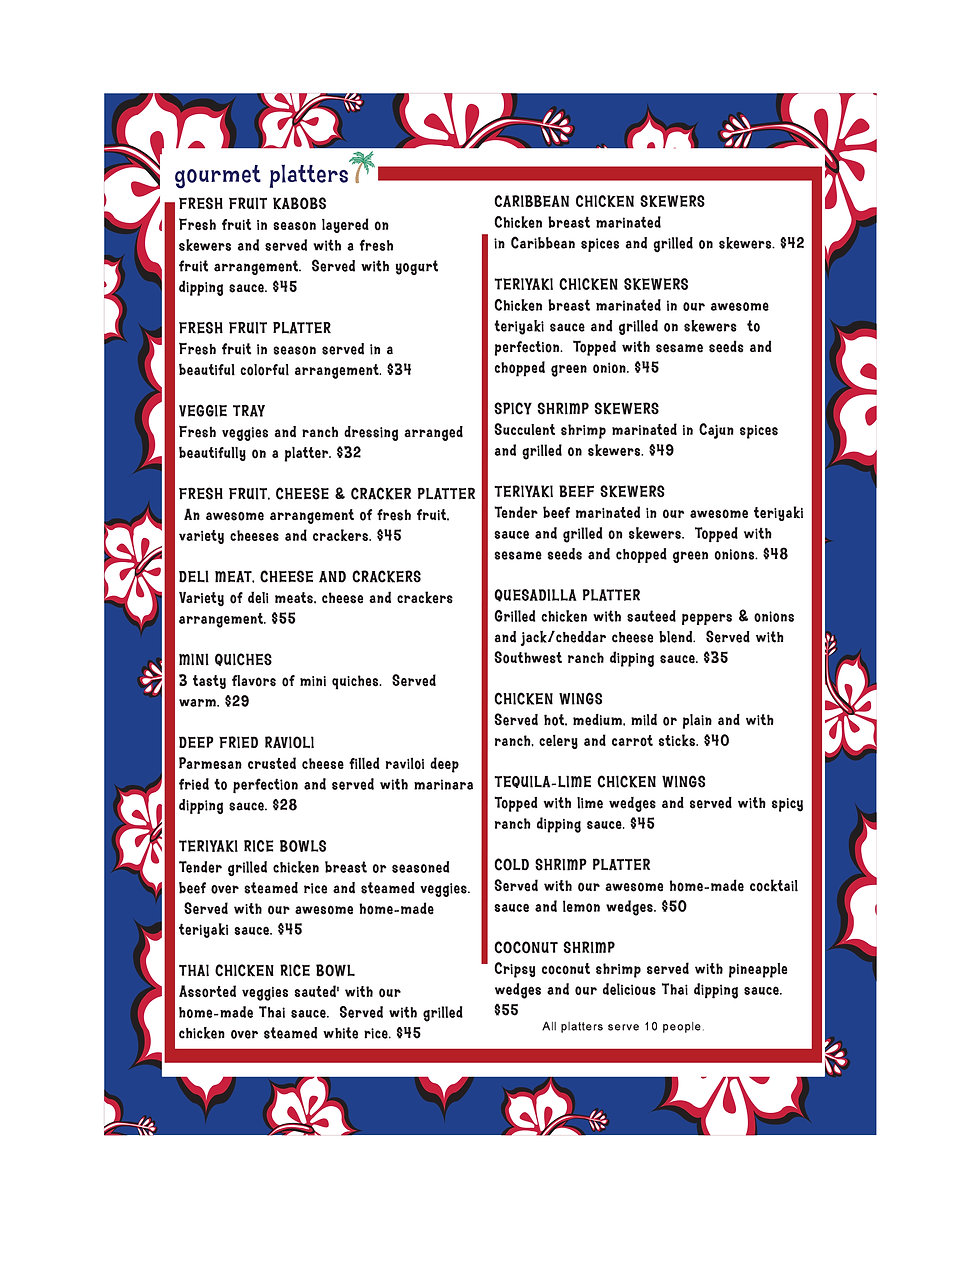 Beach Cafe Catering Menu -5.jpg